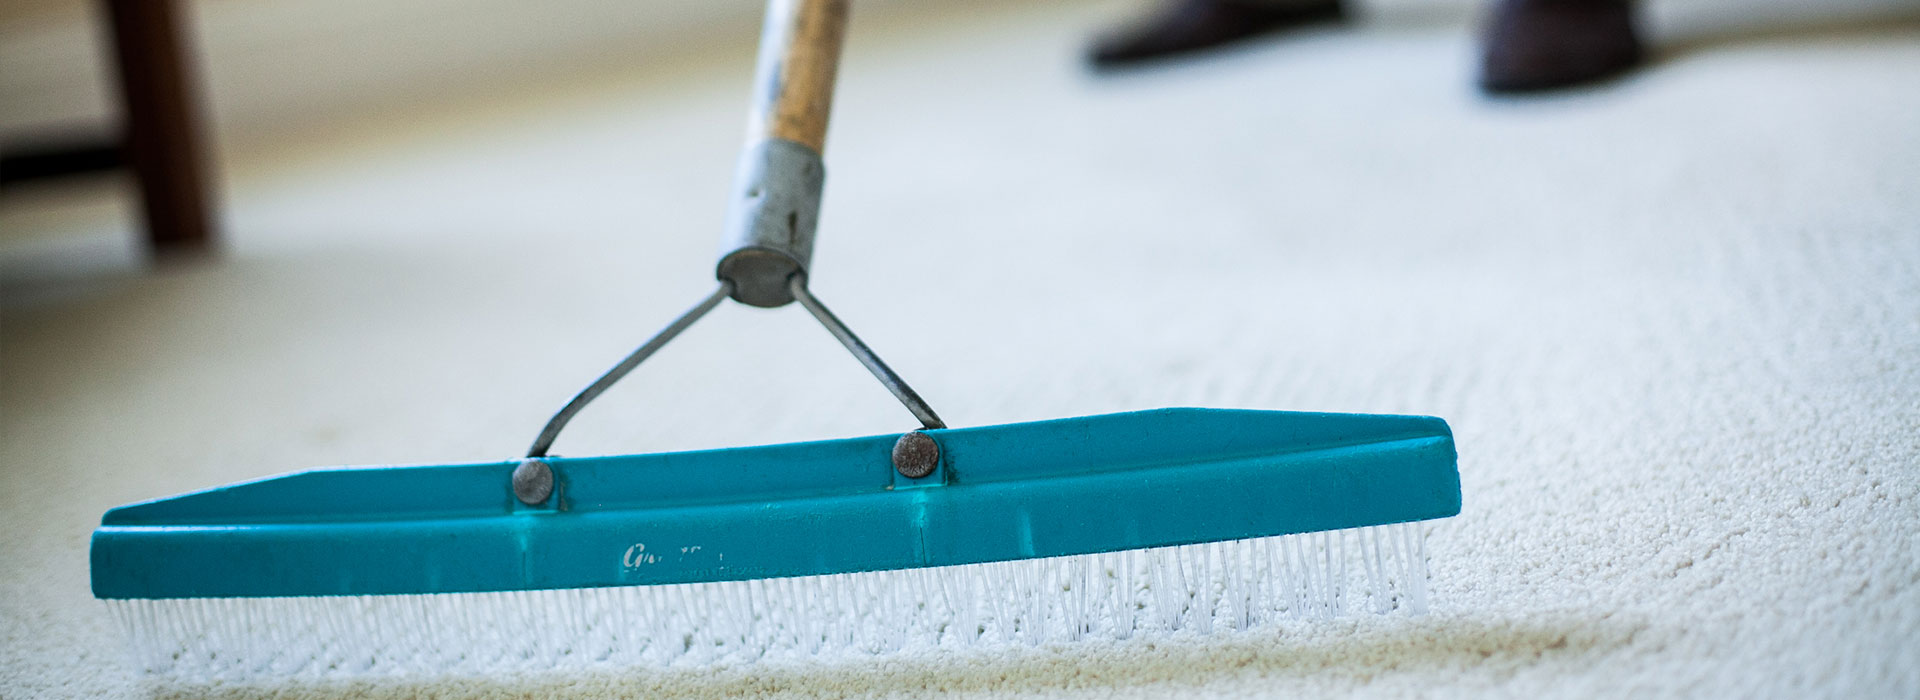 Carpet Keepers serving greater Loudoun area carpet cleaning